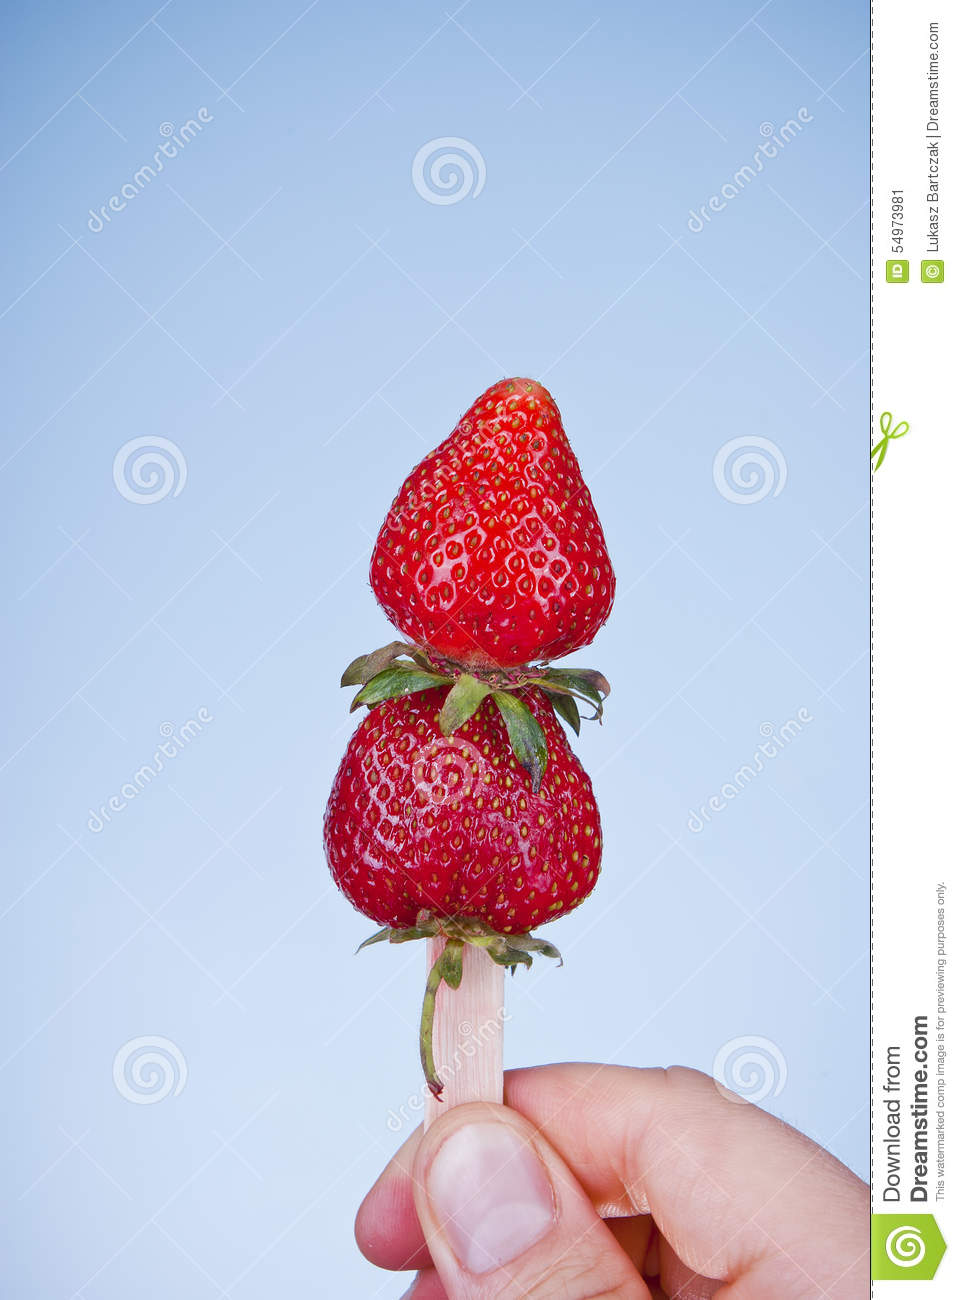 Fresh strawberry ice cream concept. Strawberries on stick.